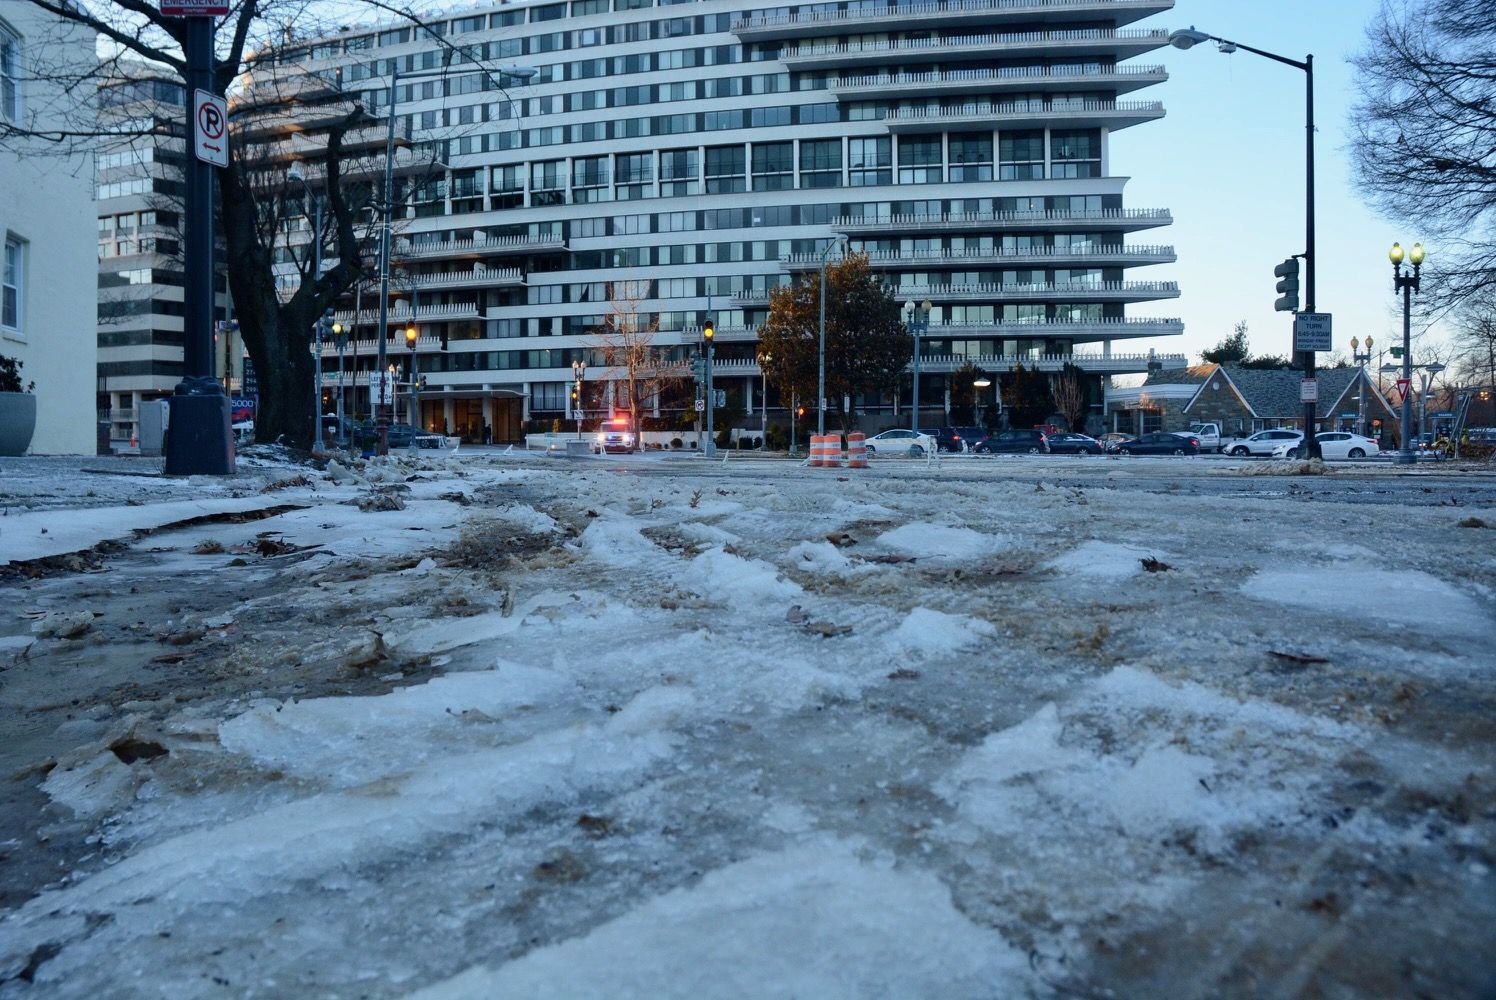 The water main break at 27th St. NW near the Watergate Hotel. (WTOP/Dave Dildine)